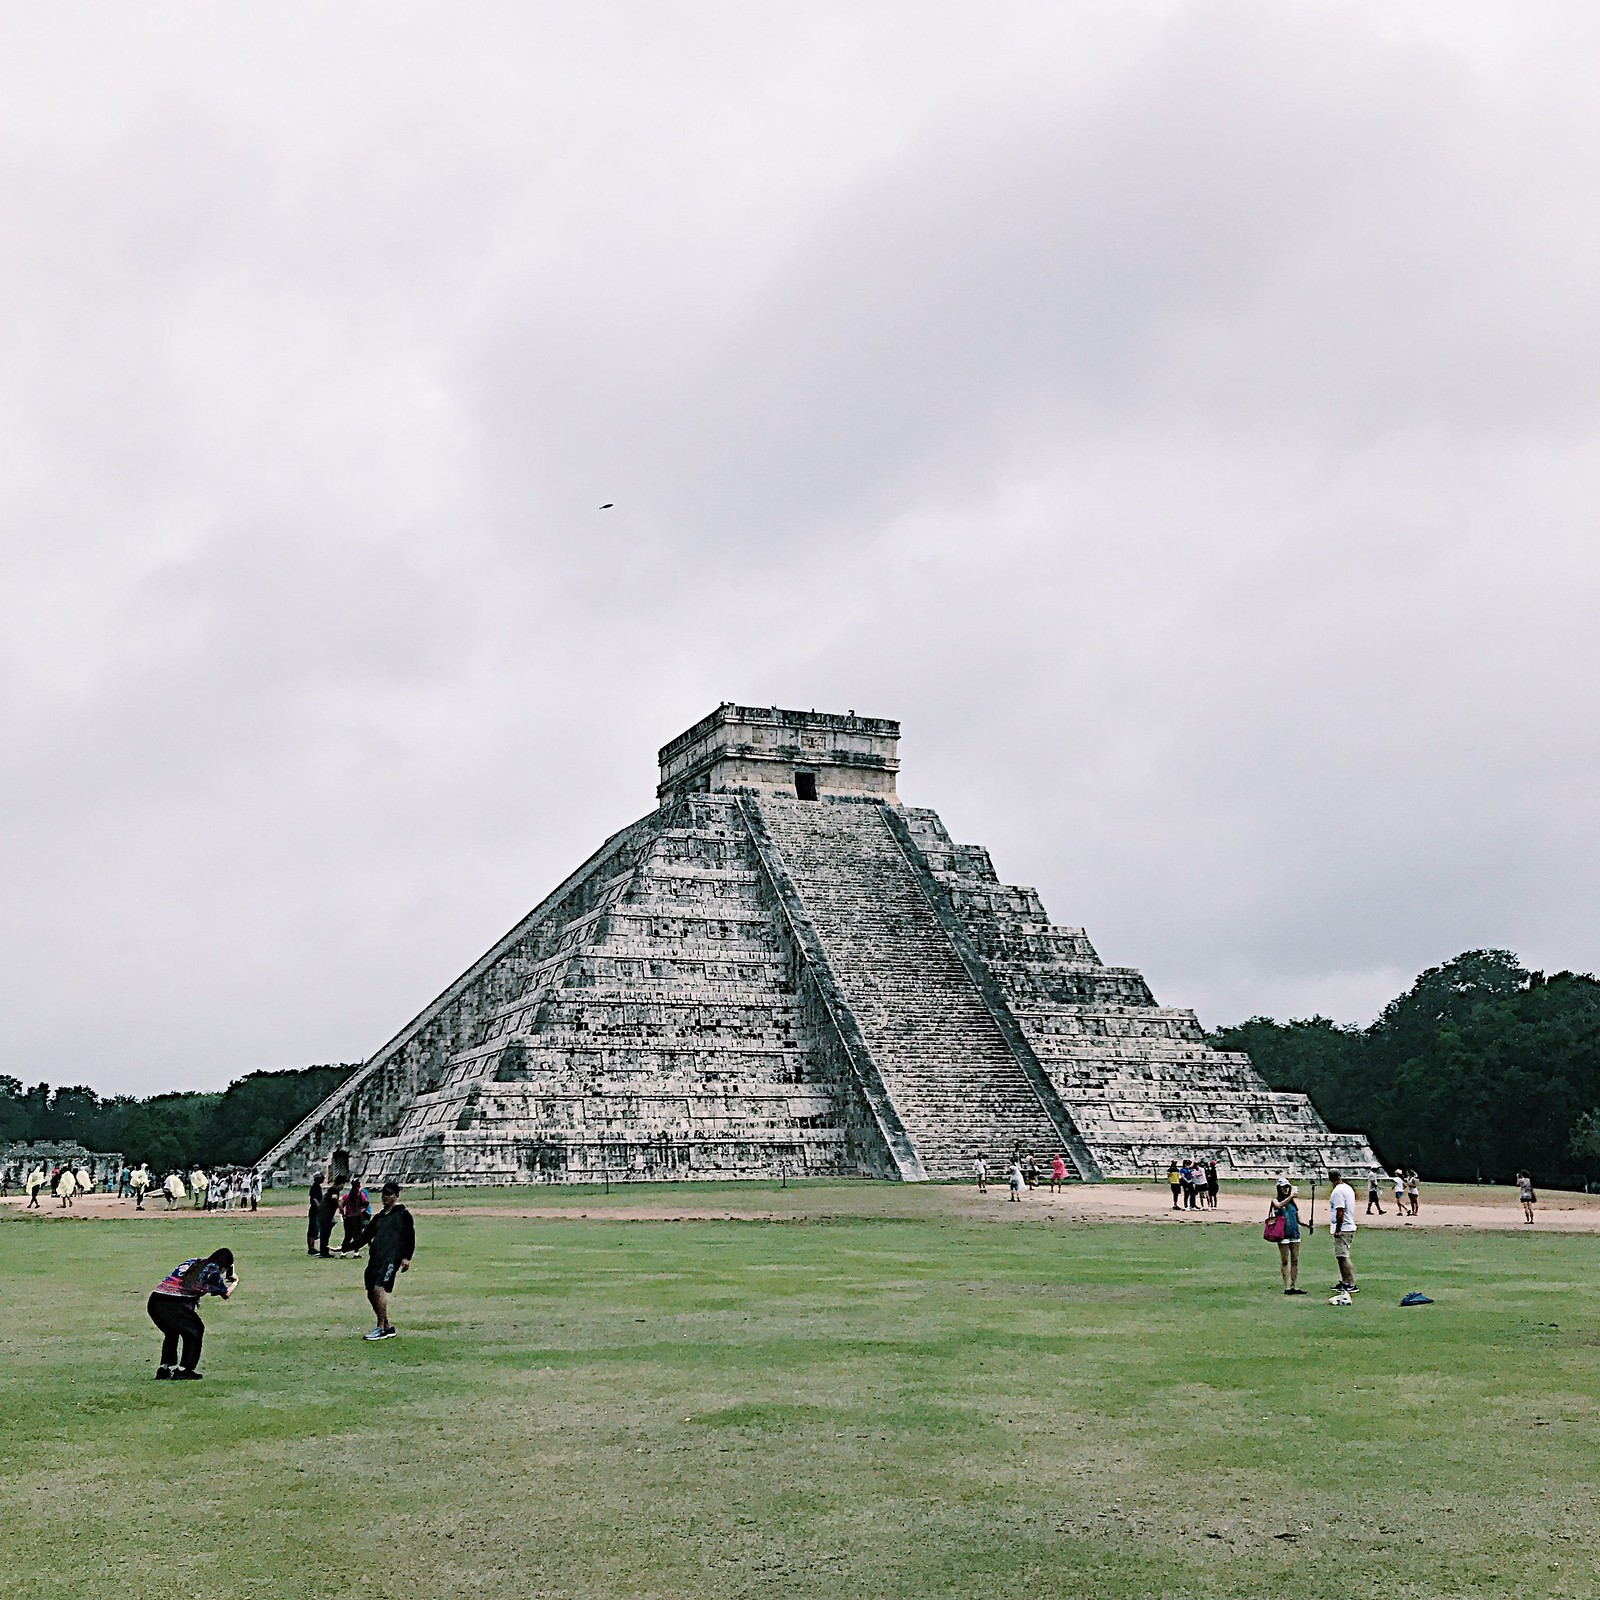 chichenitza-mexico-maya-mayan-seven-wonders-of-the-world-travel-traveldiary-clothestoyouuu-elizabeeetht